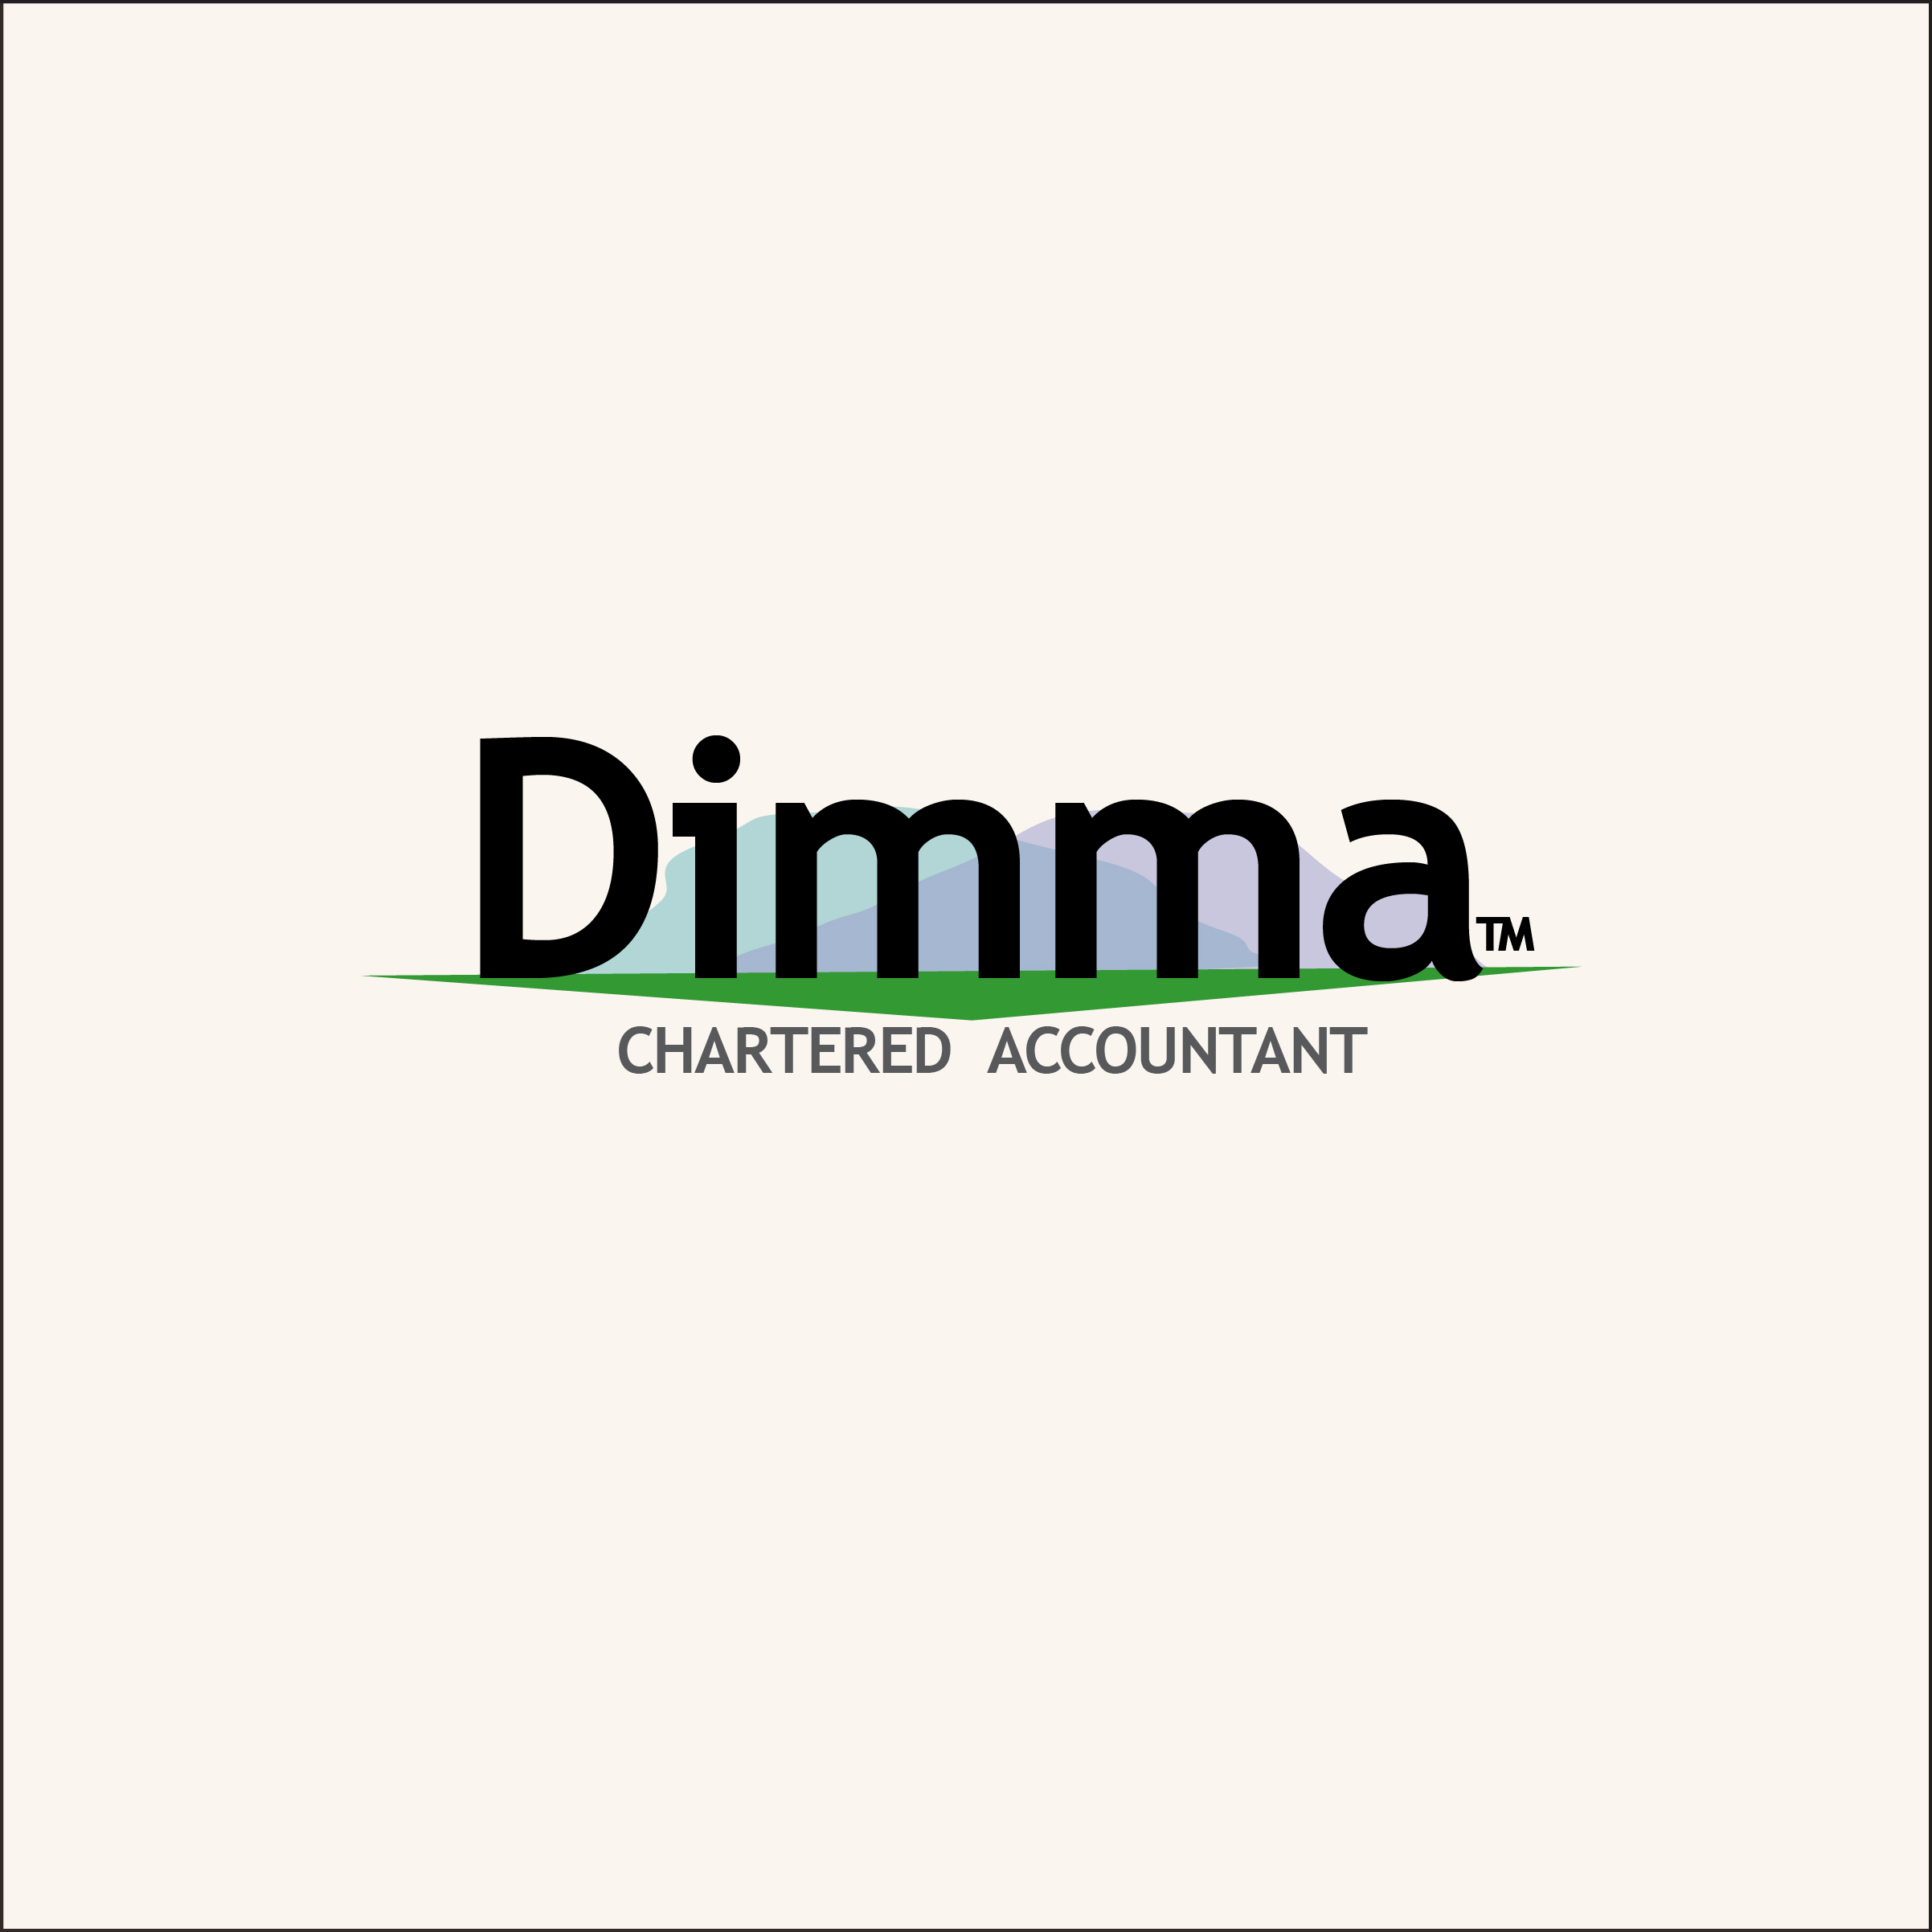 Logo Design by Nancy Grant - Entry No. 108 in the Logo Design Contest Creative Logo Design for Dimma Chartered Accountant.